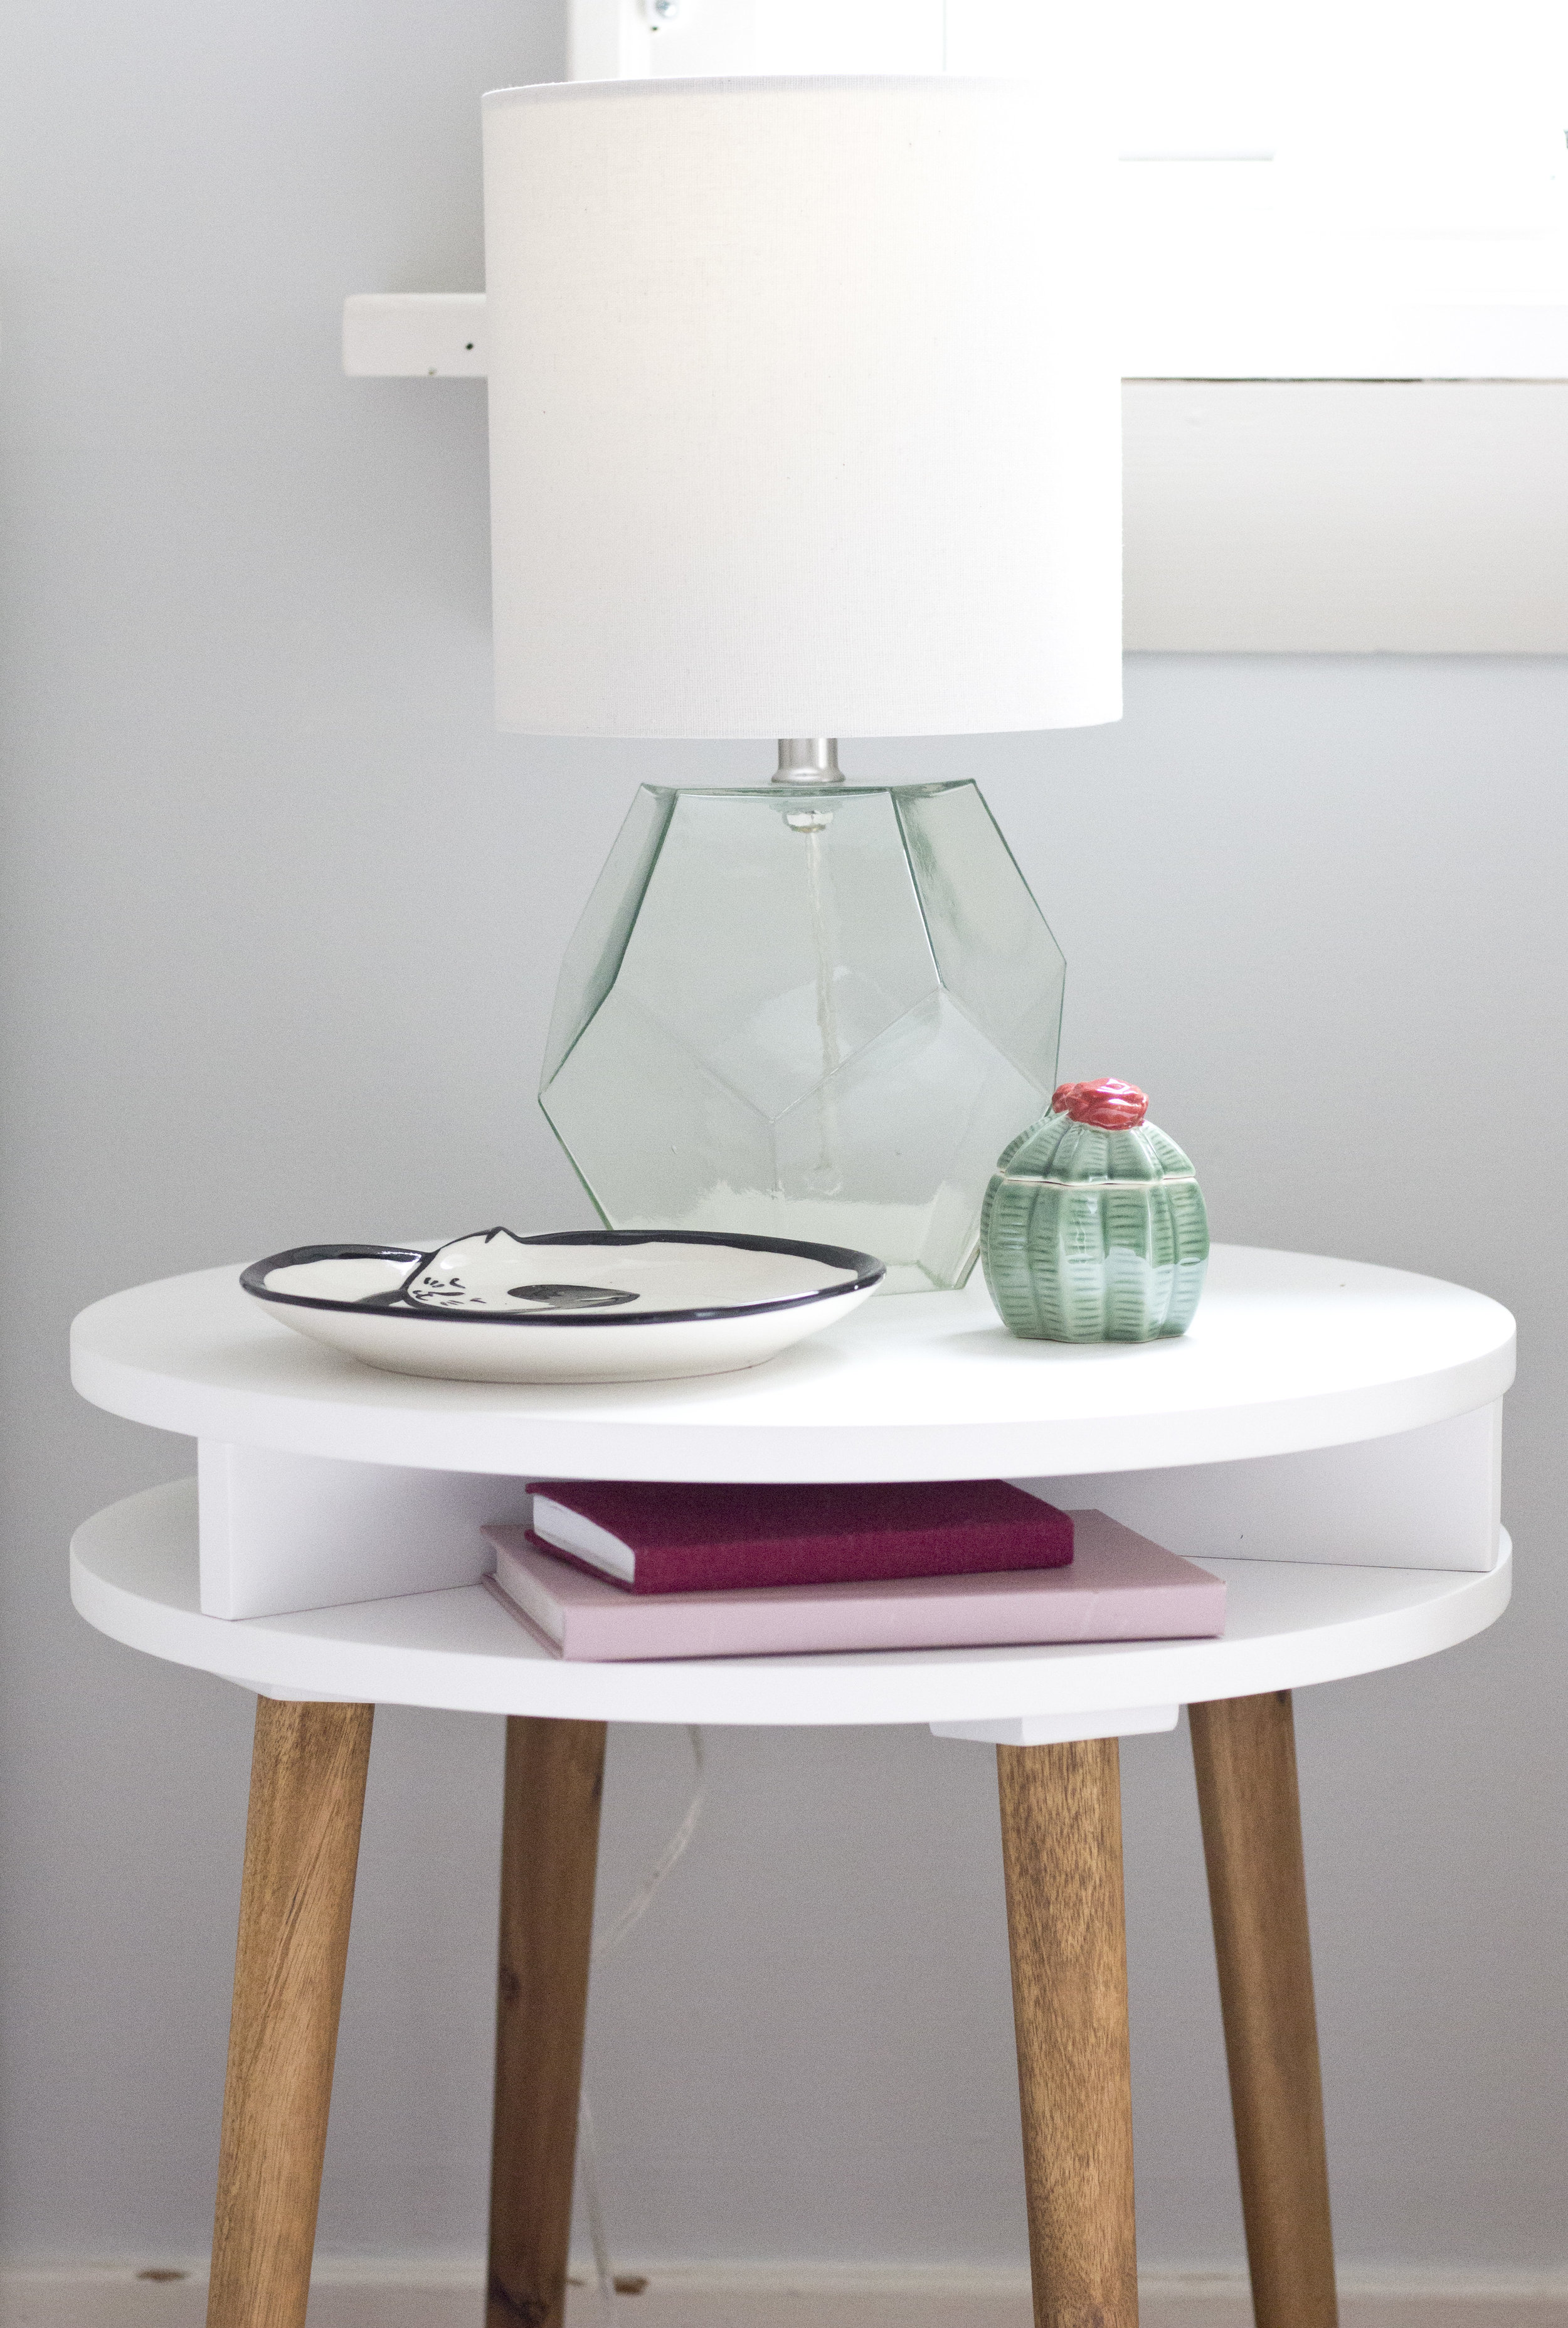 Gen_detail_bedside table_IMG_6864.JPG